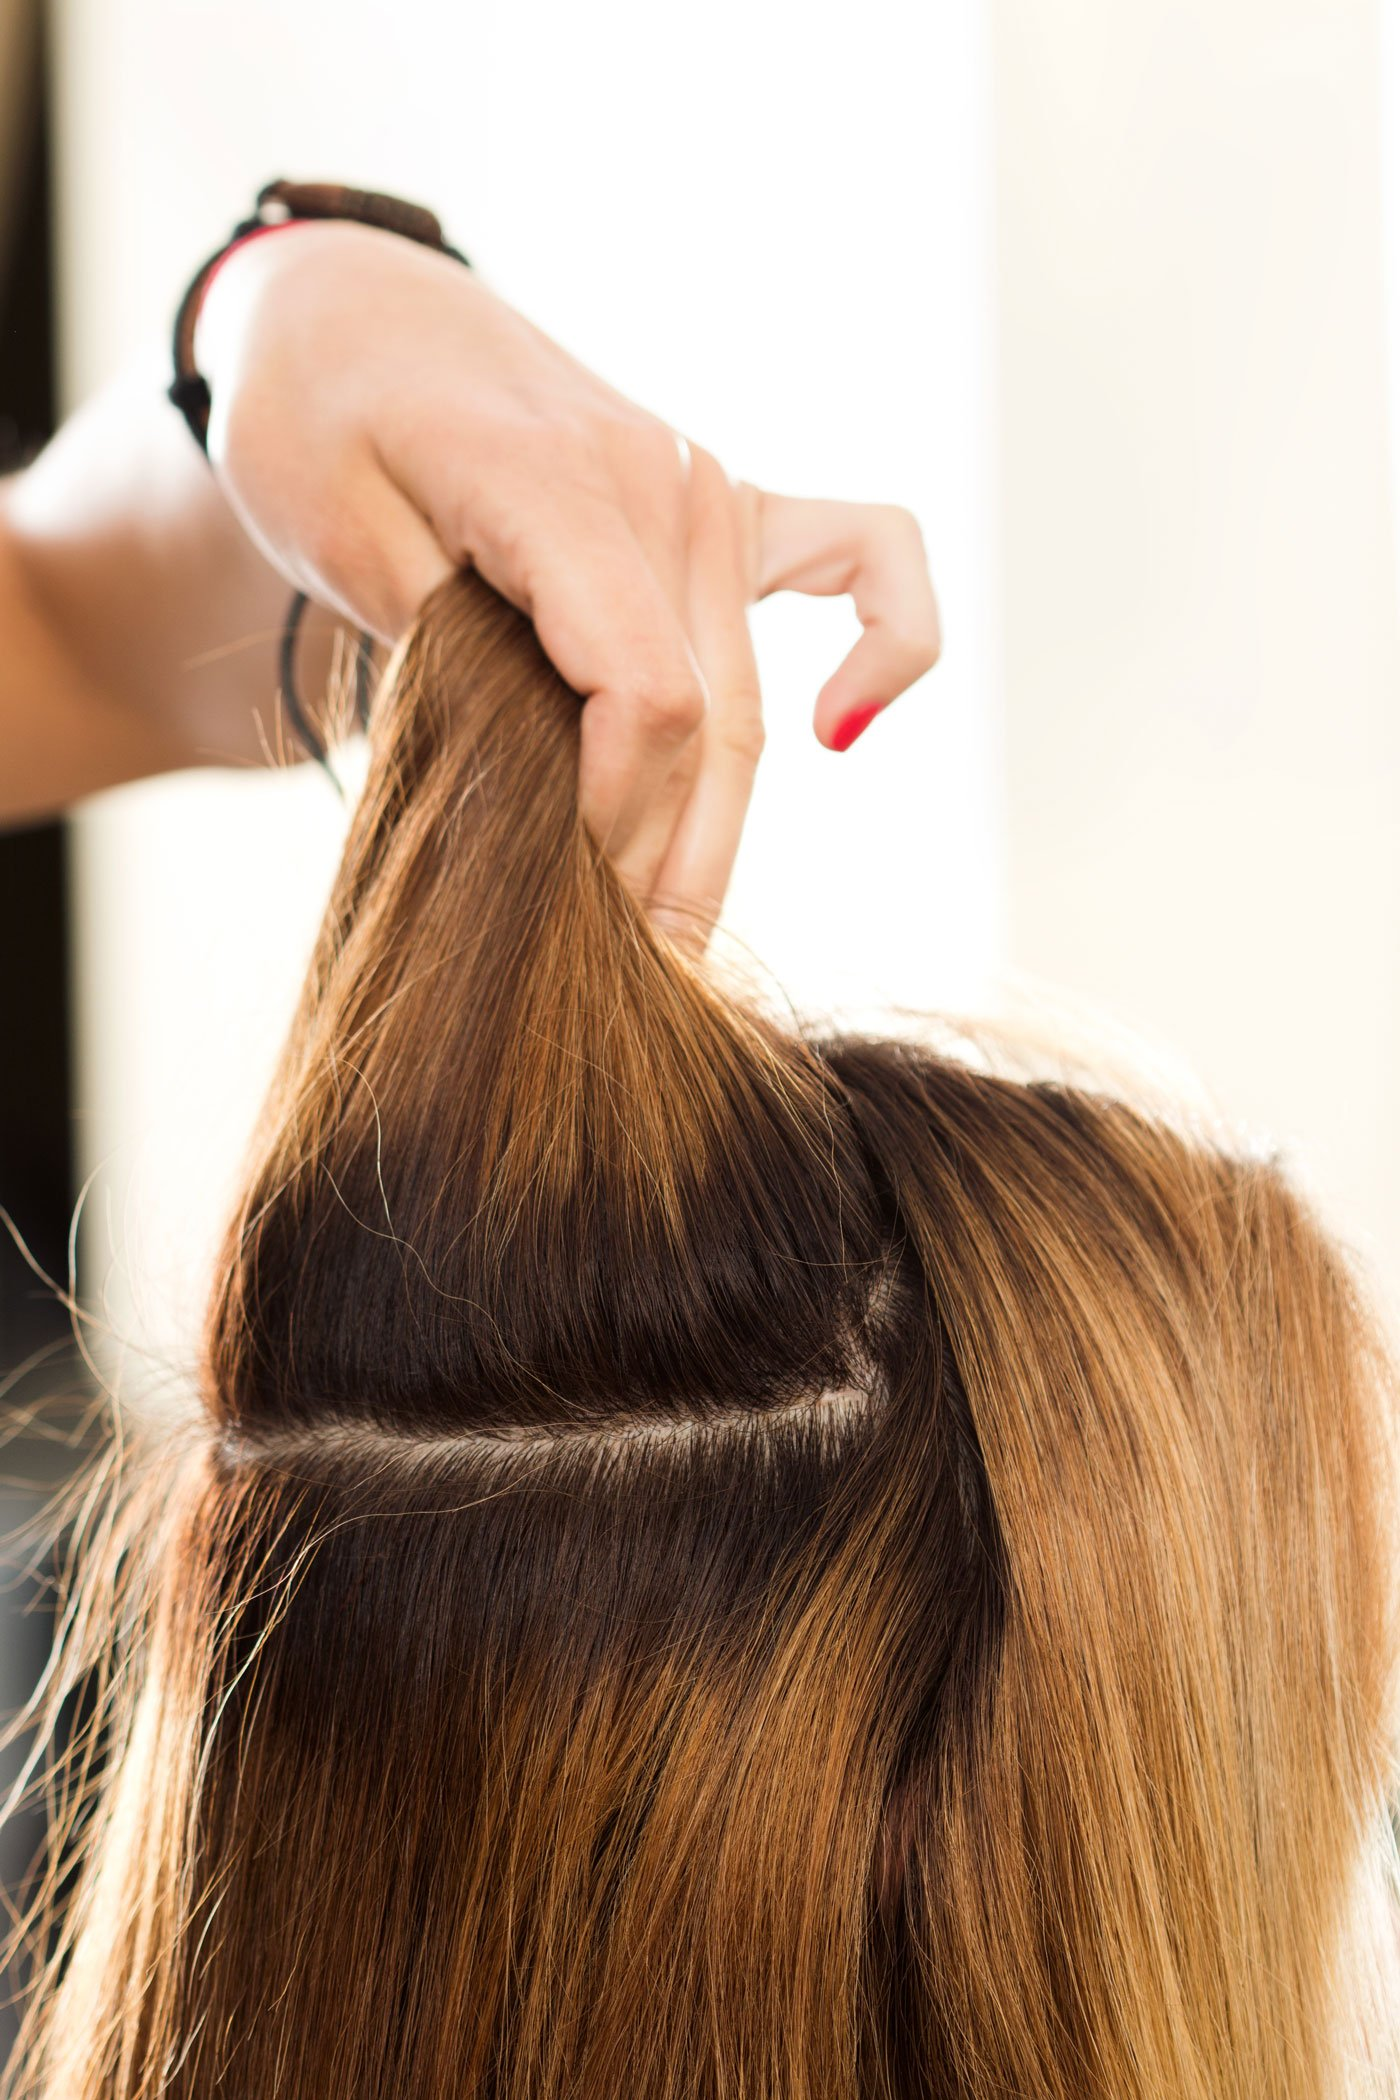 Girl hair holds up for cutting